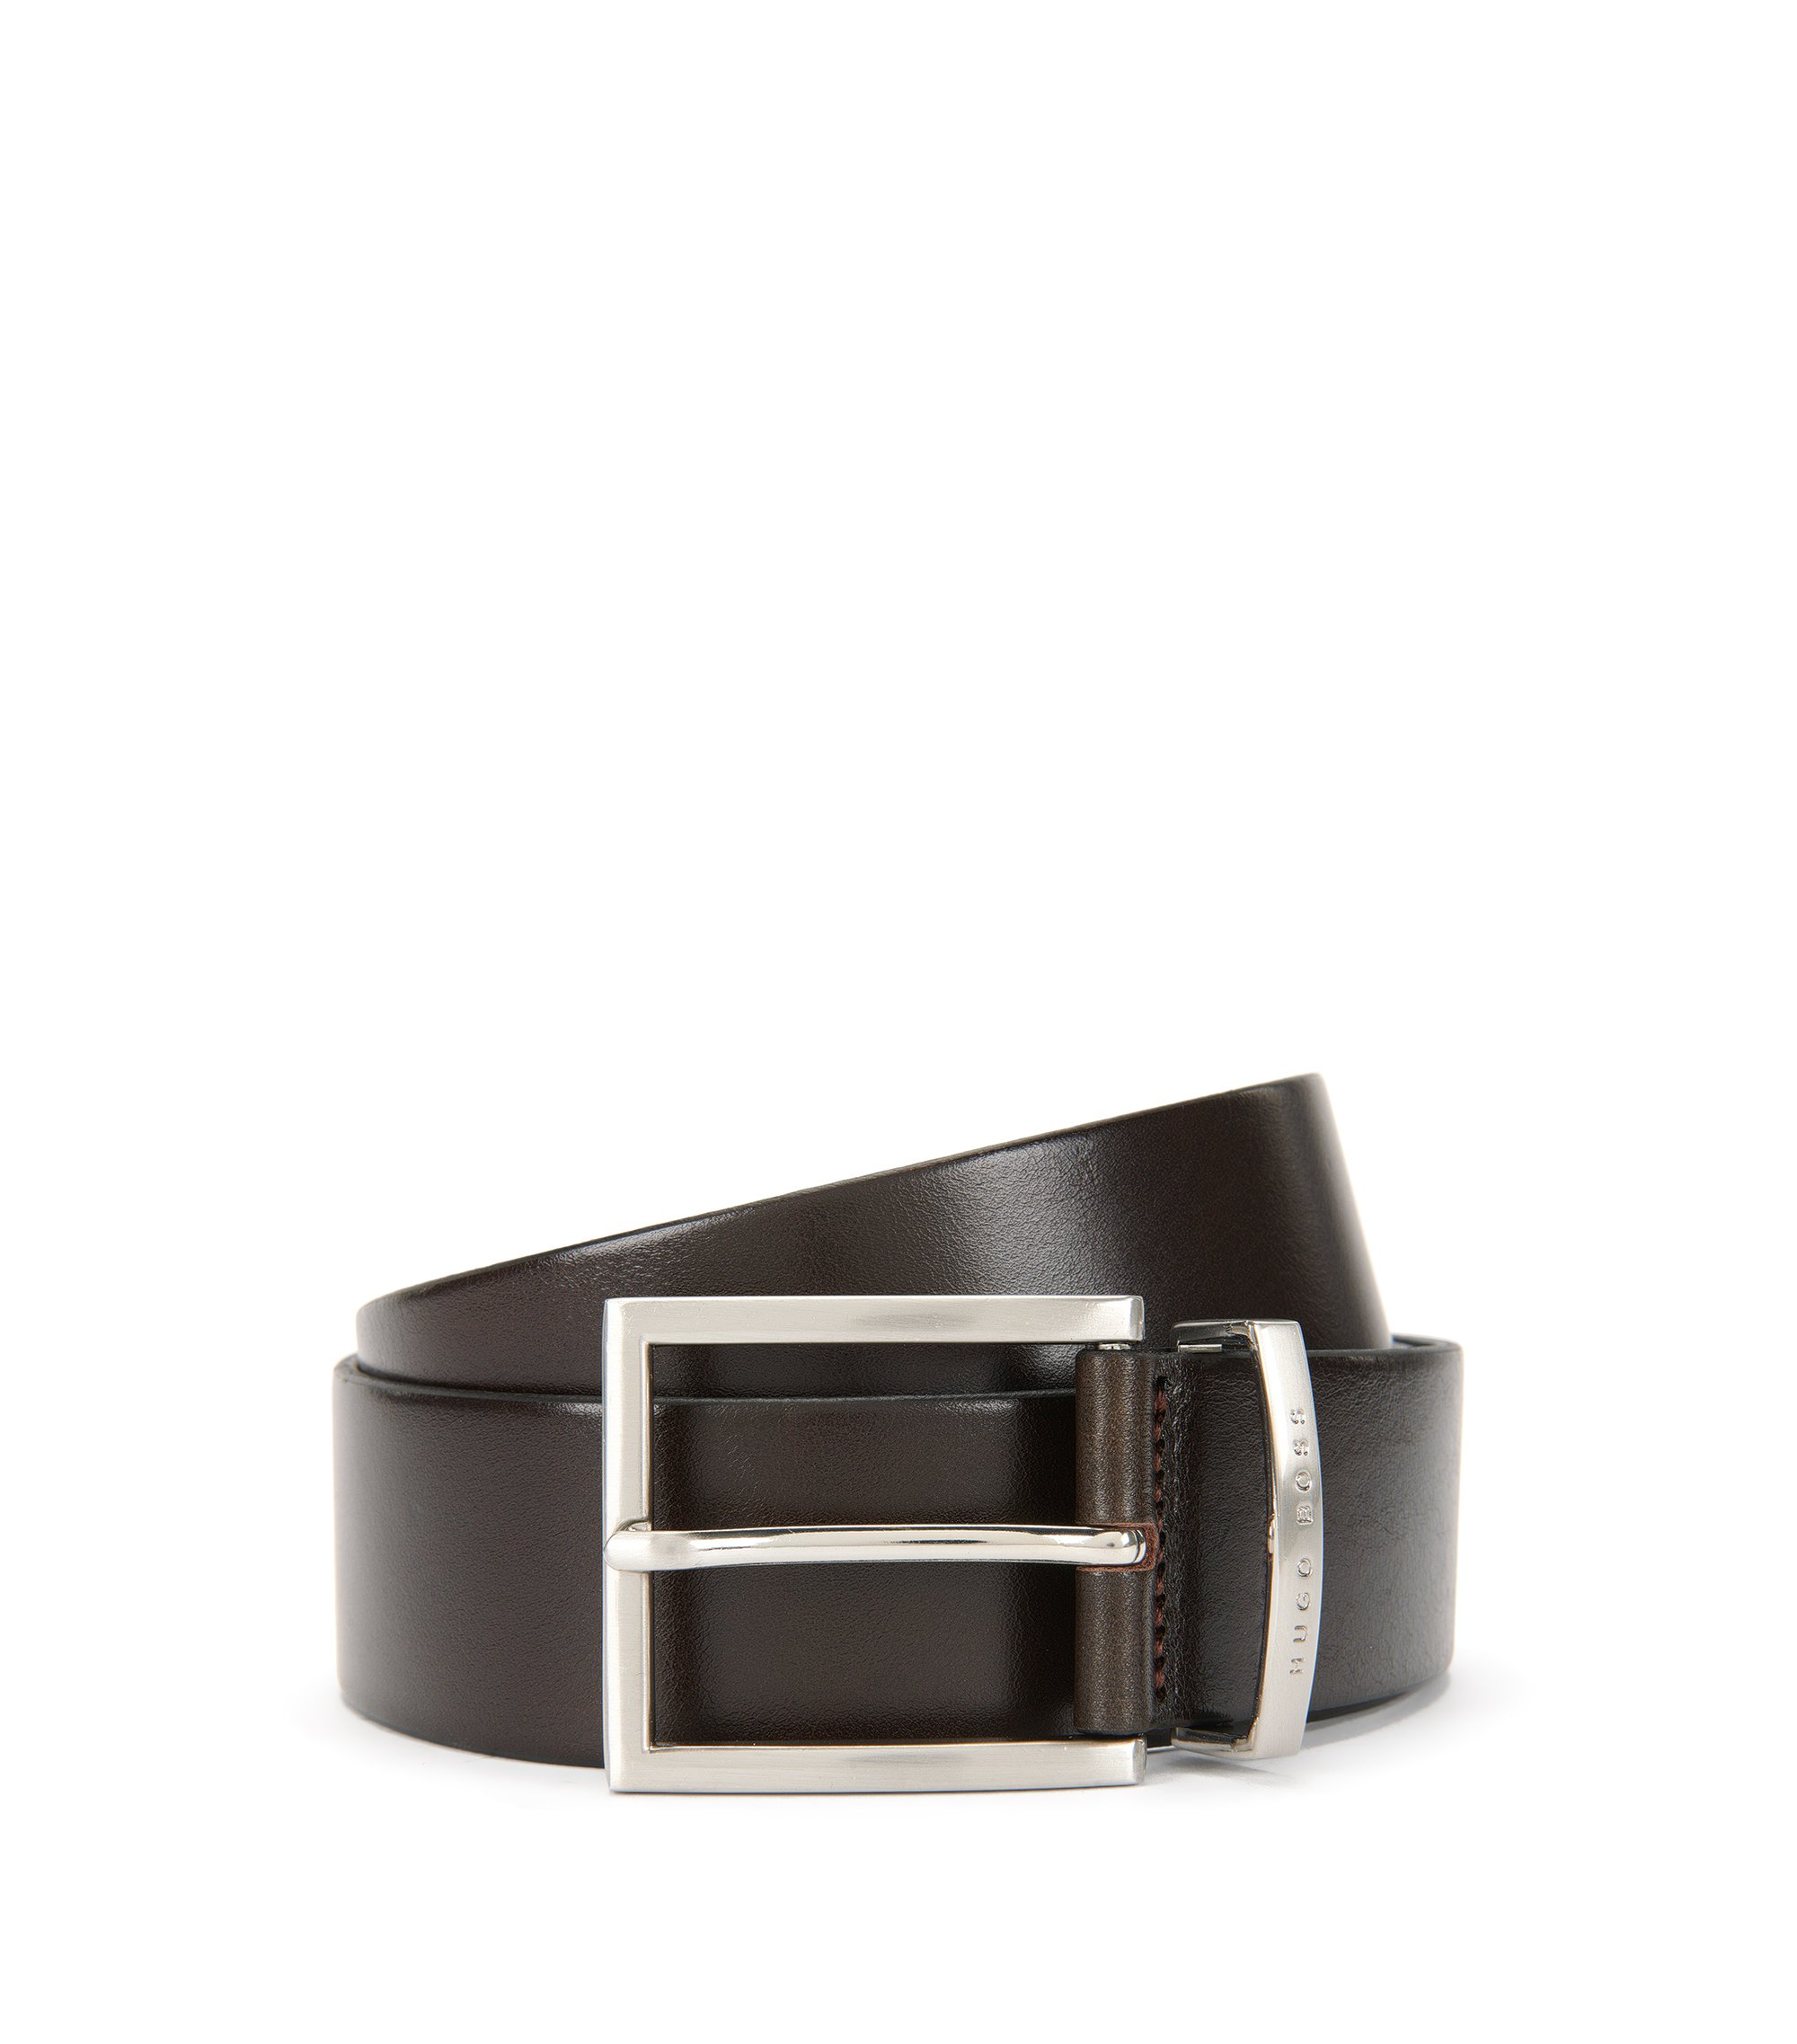 Leather belt with silver pin buckle, Dark Brown